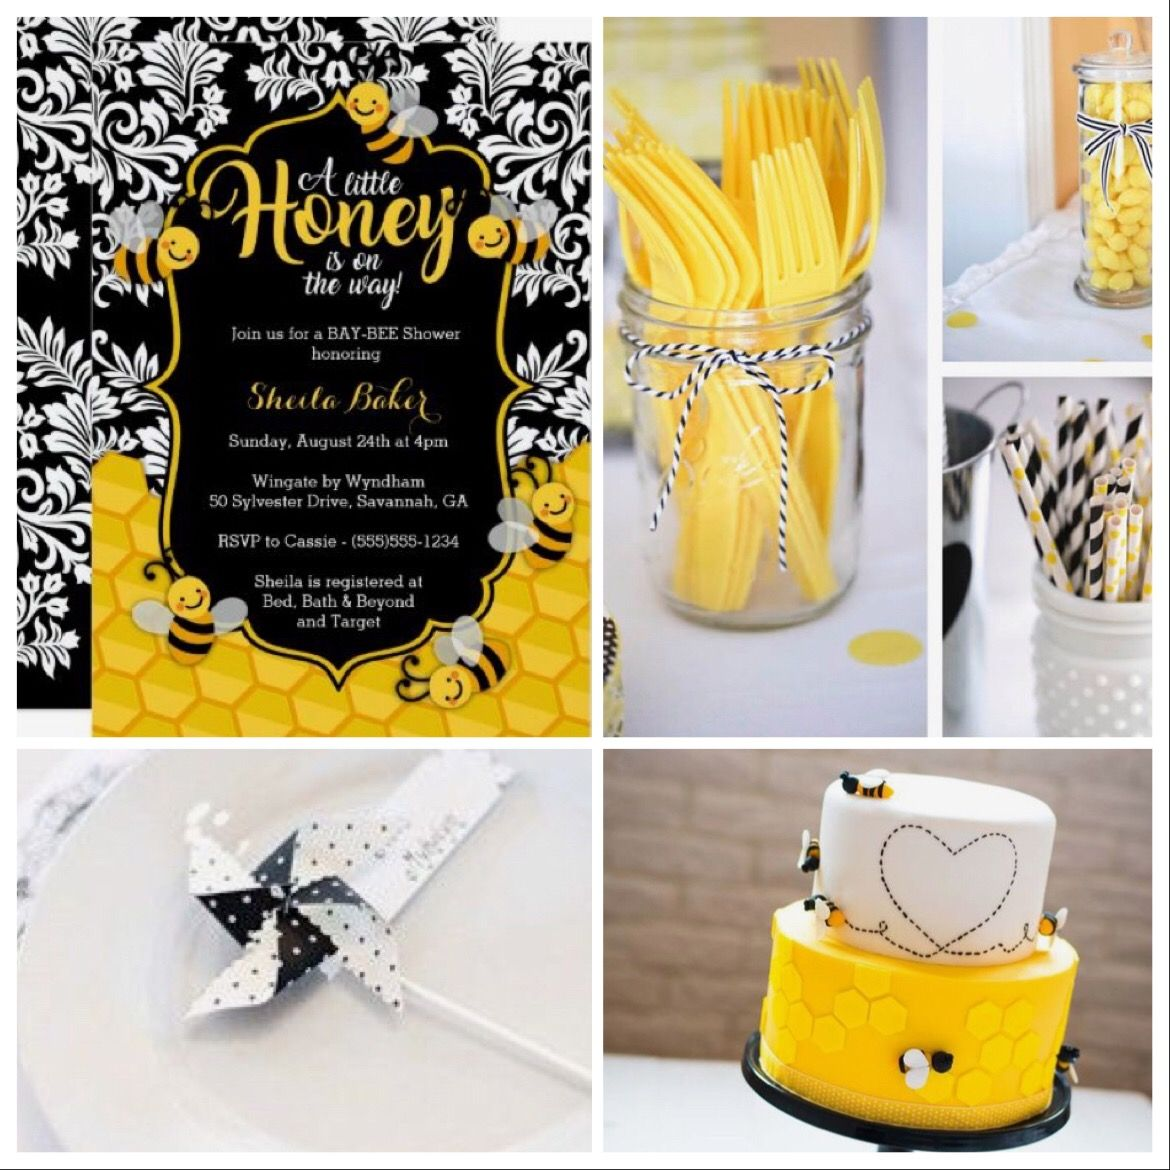 Bumble bee baby shower decorations, or bumble bee bridal shower. Black and  yellow are beautiful together! Aubabi78 at Etsy.com can make custom  pinwheel ...